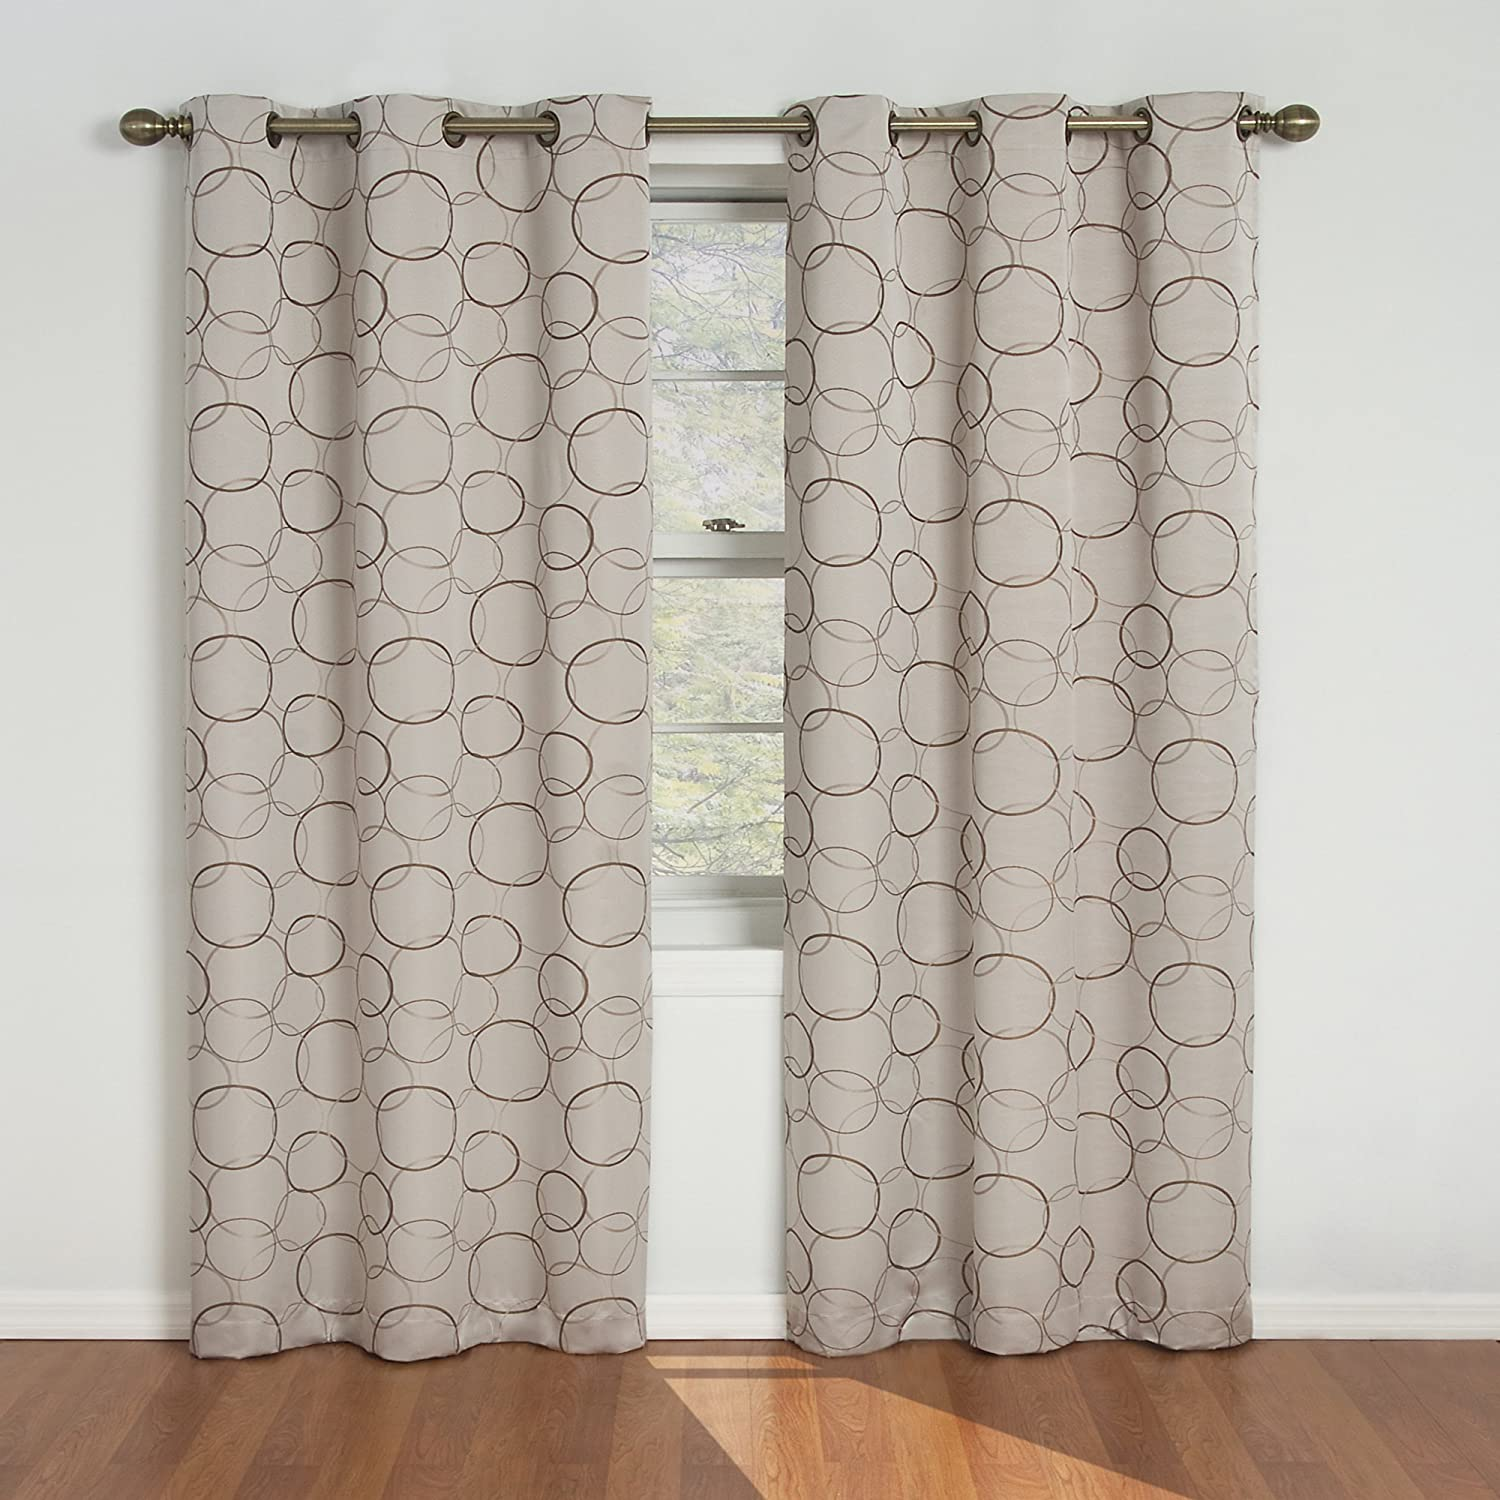 com pocket single dp curtain curtains tricia thermapanel home grey blackout kitchen tan amazon inch by rod eclipse